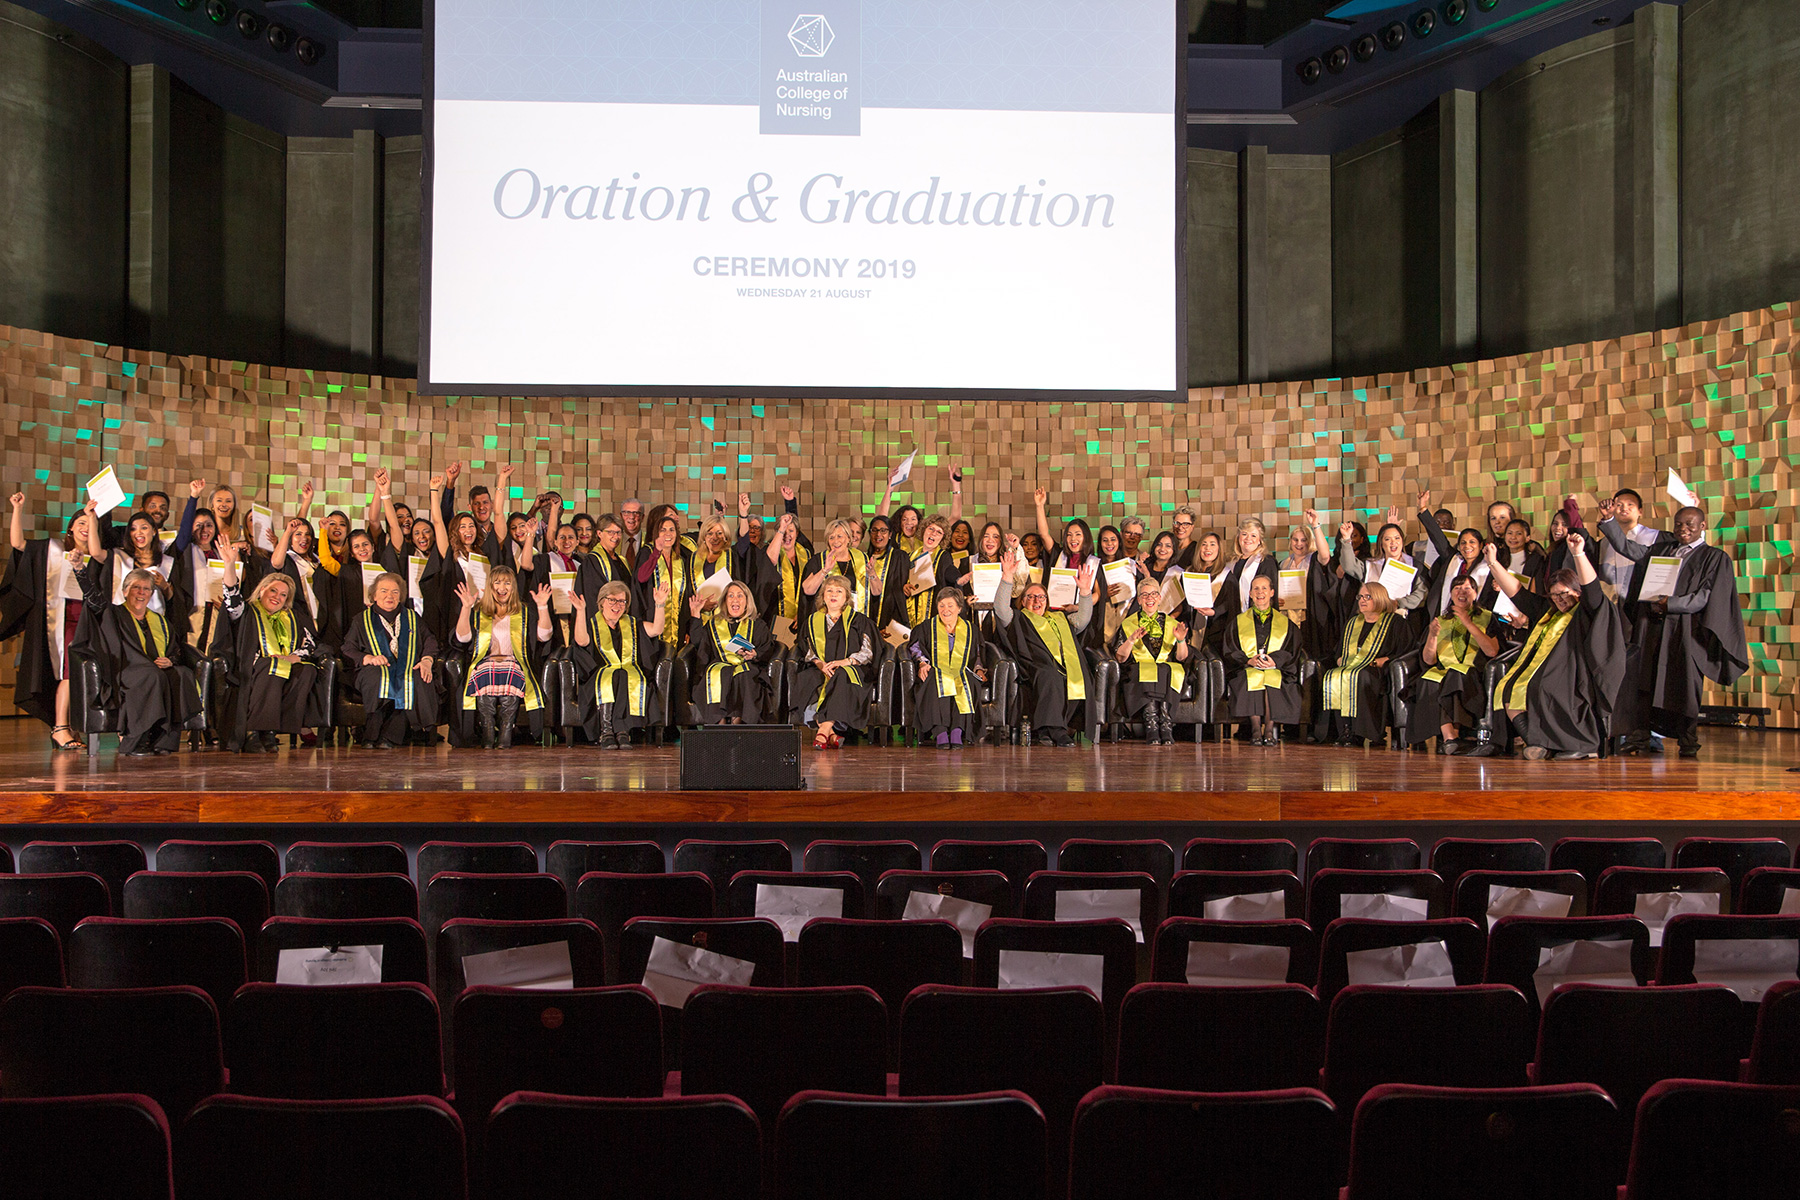 NNF 2019 Graduation and Oration ceremony